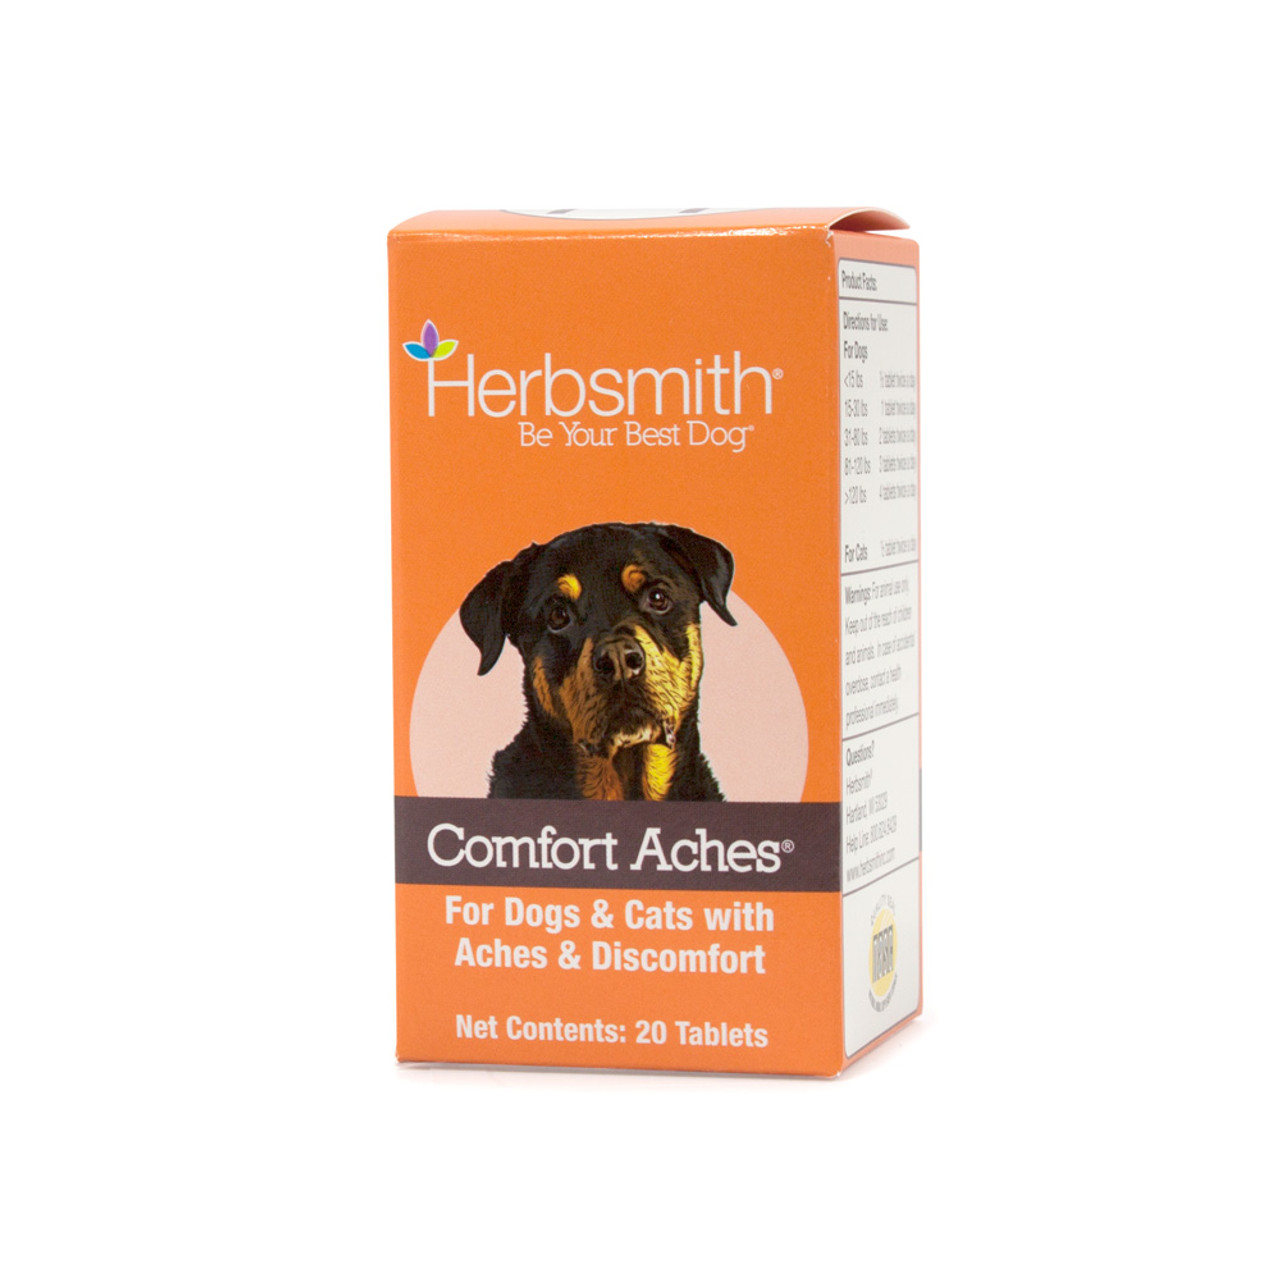 Herbsmith Comfort Aches Tablets for Dogs & Cats